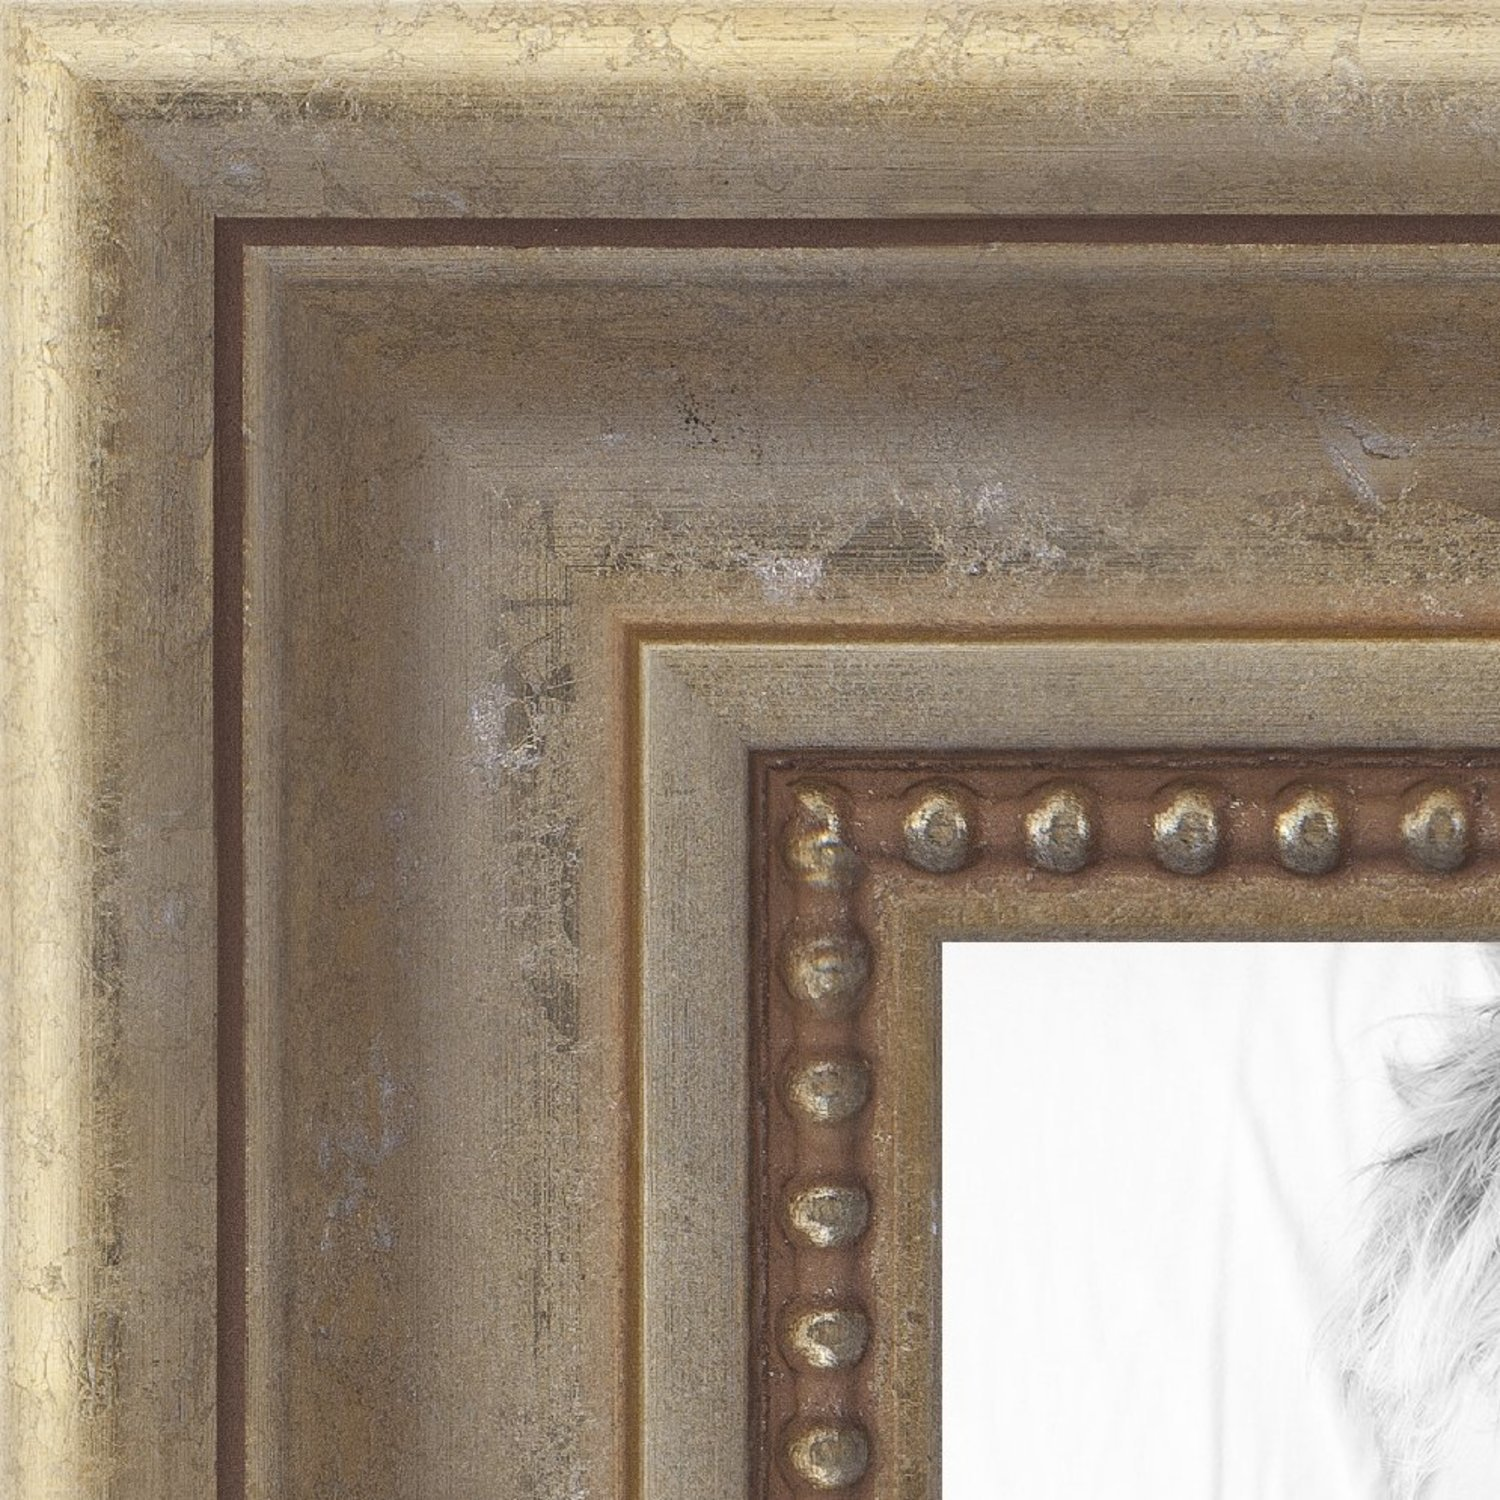 ArtToFrames 18x24 inch Aged White Gold with Beaded Detailing Wood Picture Frame, WOMD8808-18x24